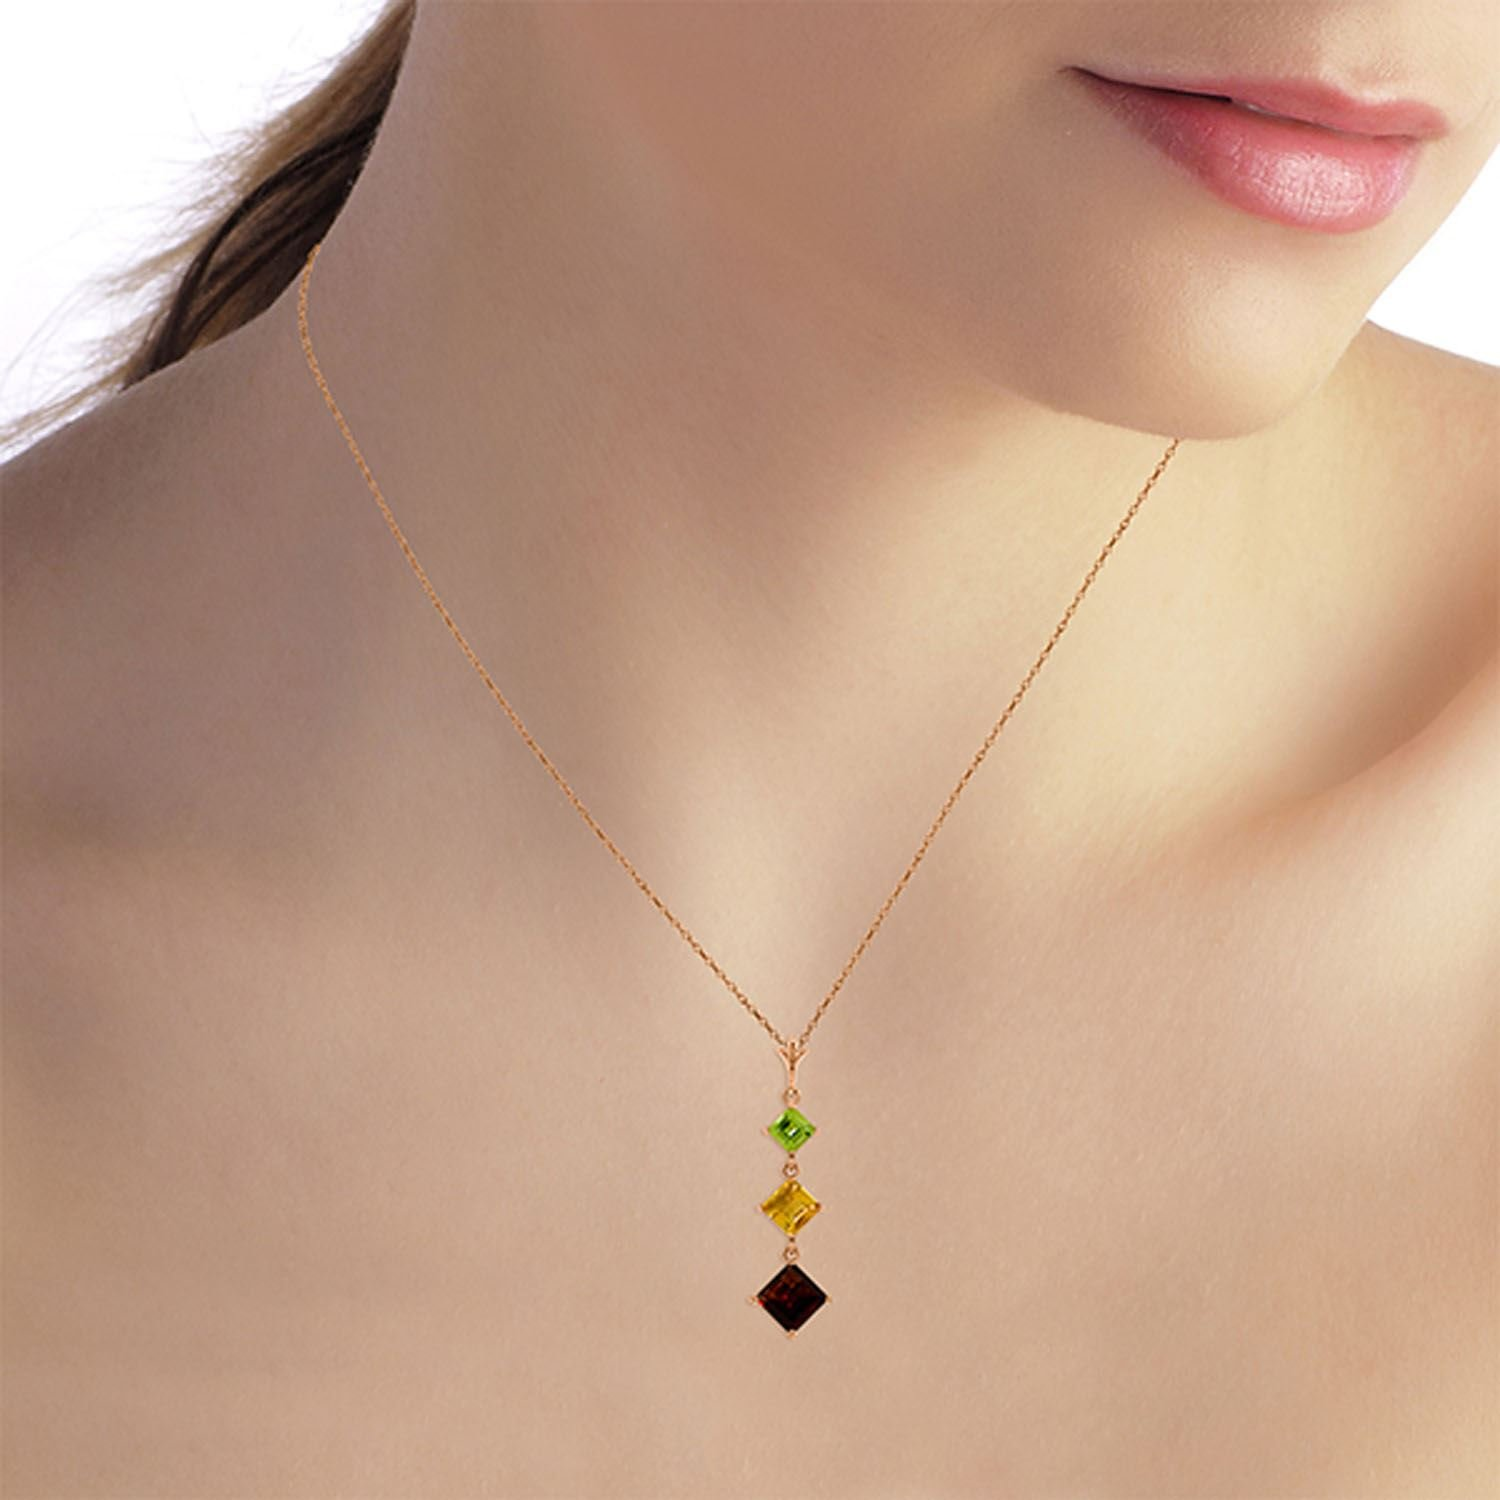 ALARRI 2.4 Carat 14K Solid Rose Gold Necklace Peridot Citrine Garnet with 18 Inch Chain Length